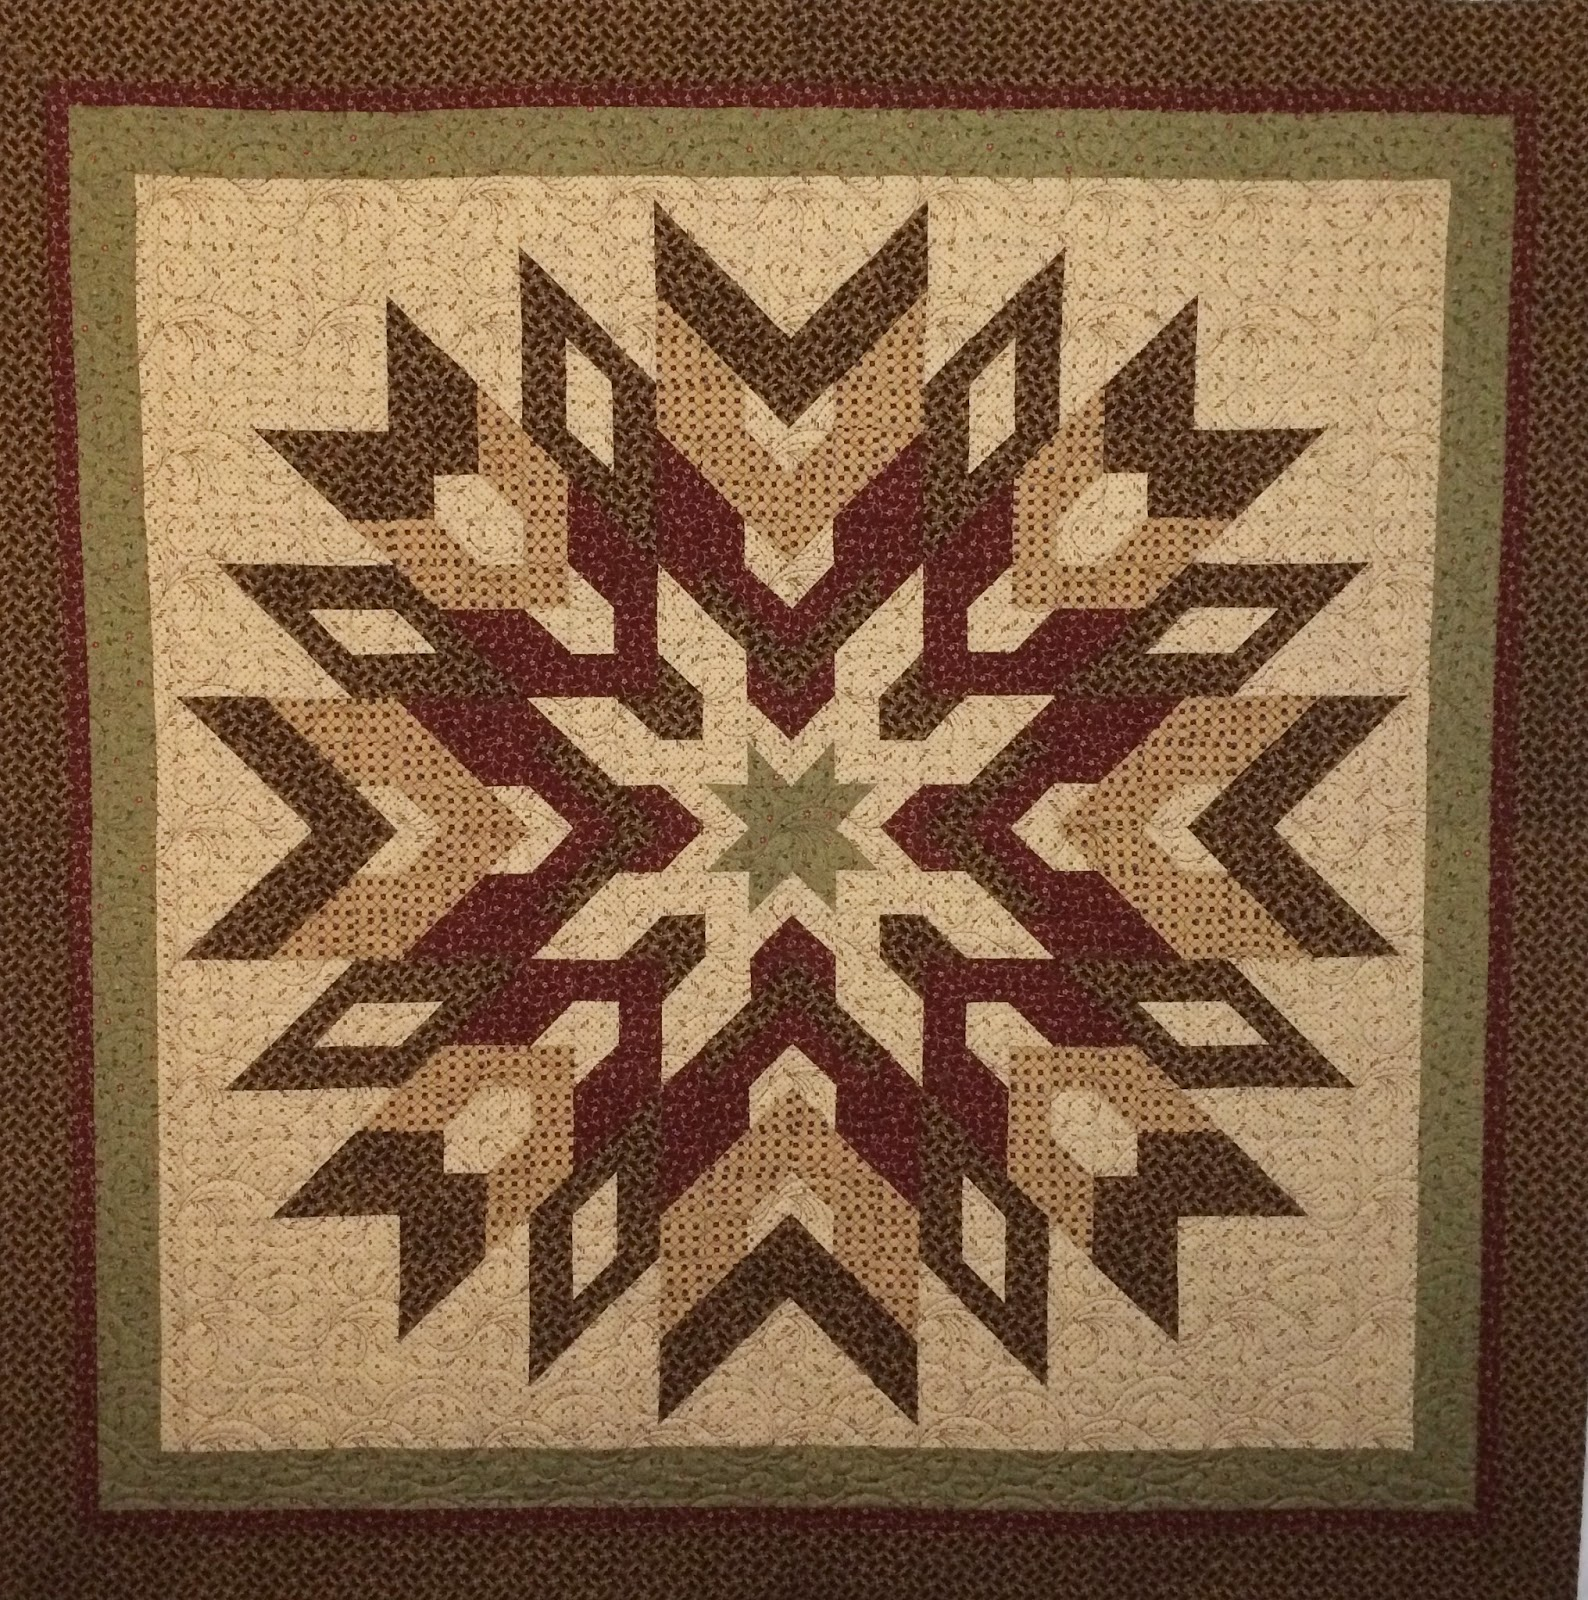 Ava Mahaffey's Snow Flake with 1890's Fabric Quilt